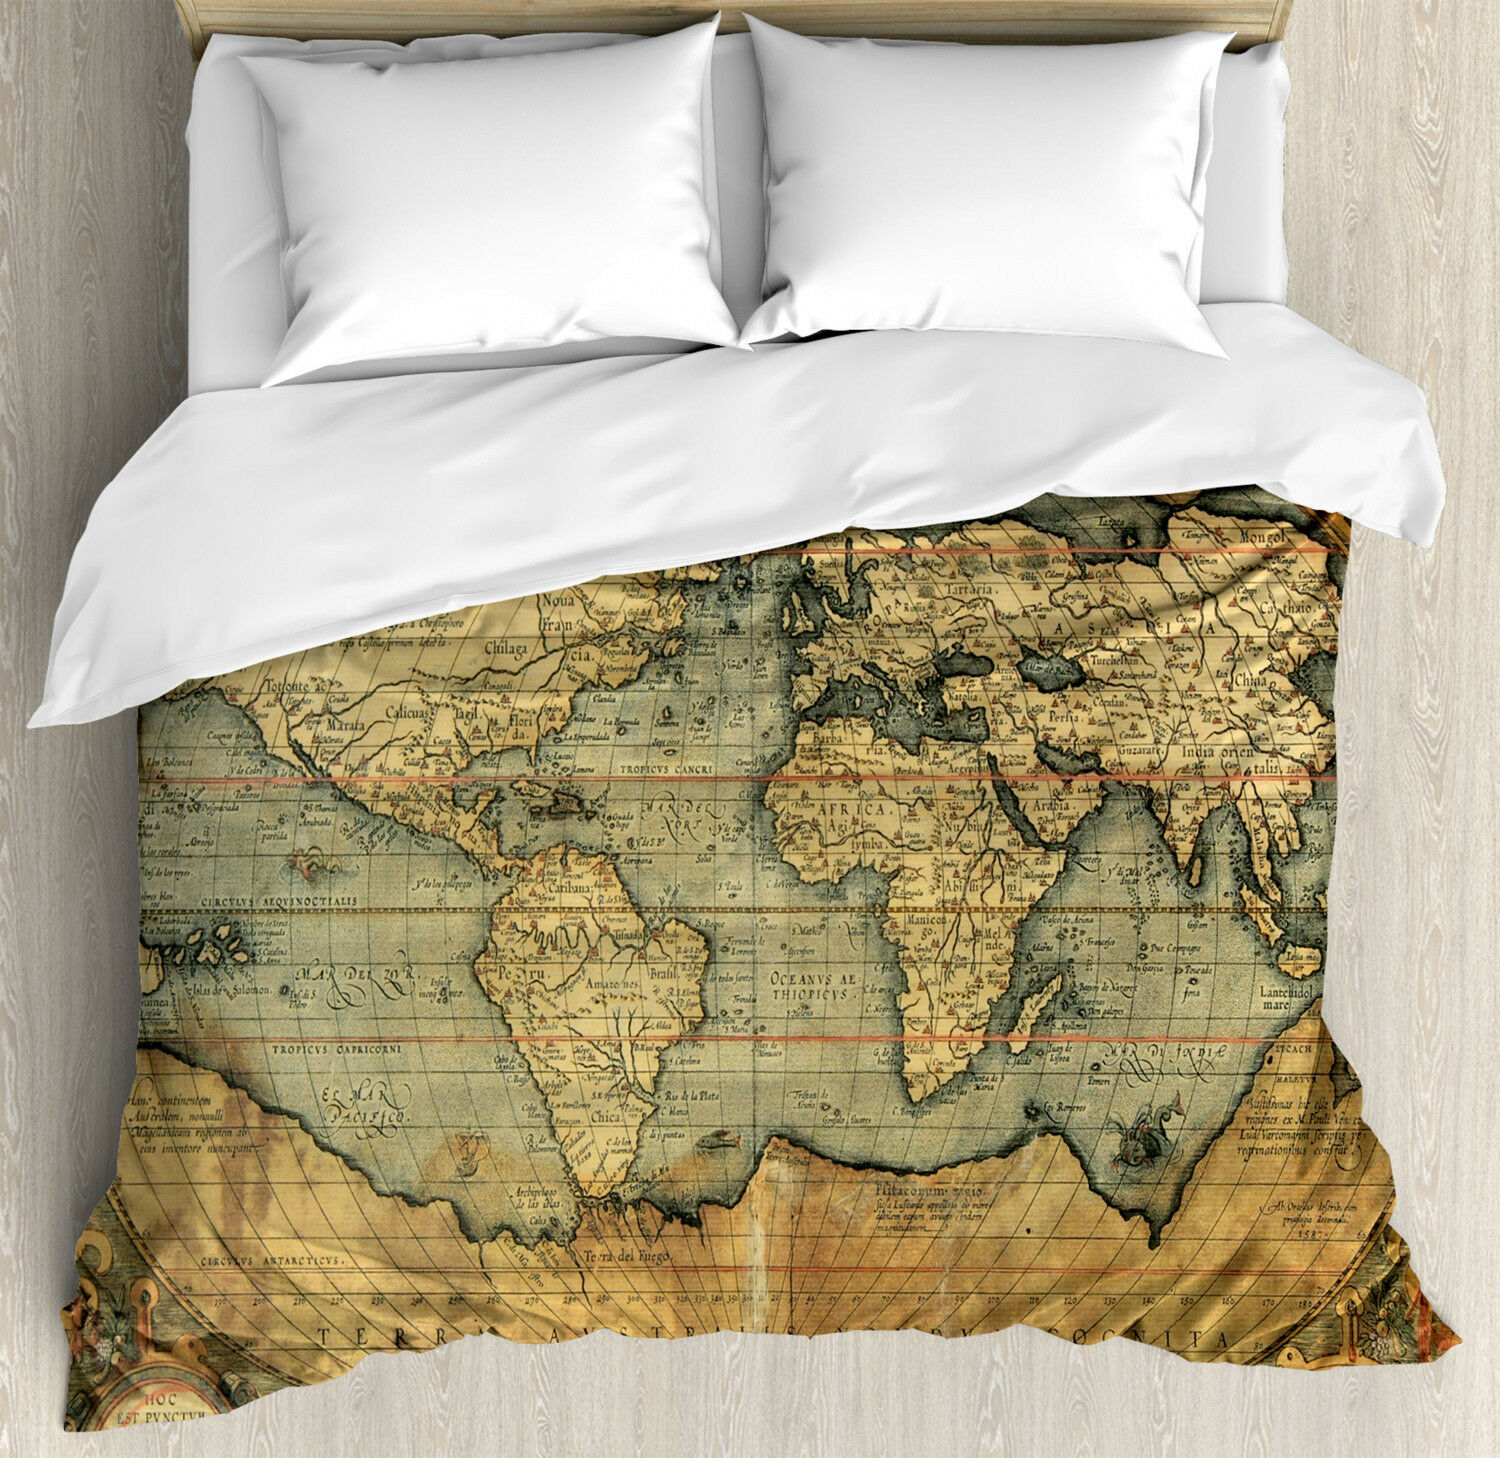 Ancient Duvet Cover Set with Pillow Shams Vintage Atlas Old Chart Print